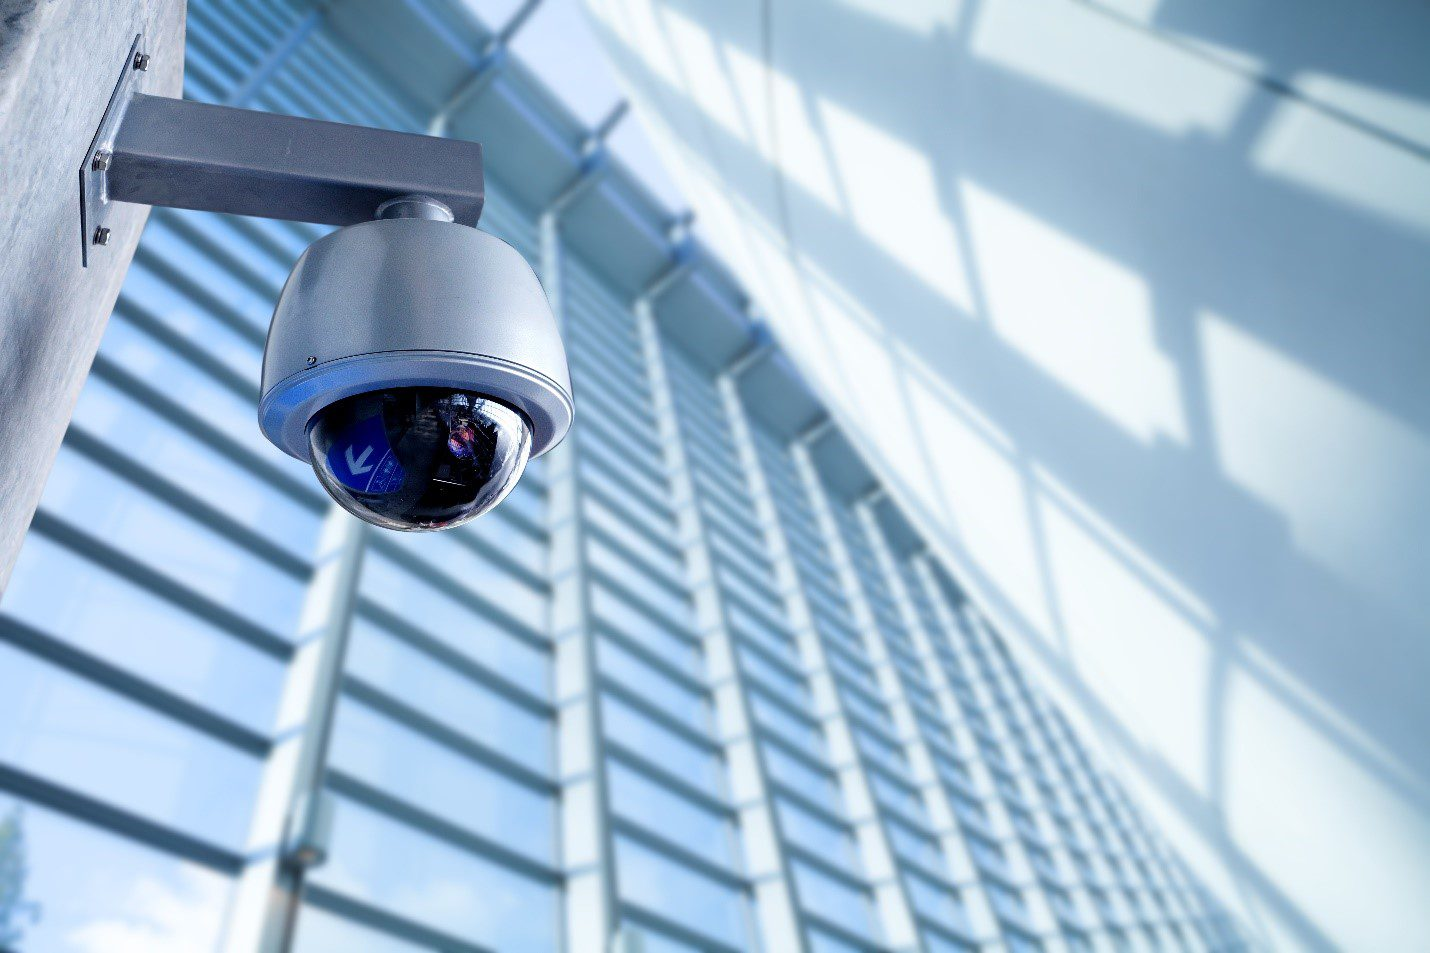 Surveillance camera on the wall in an office building